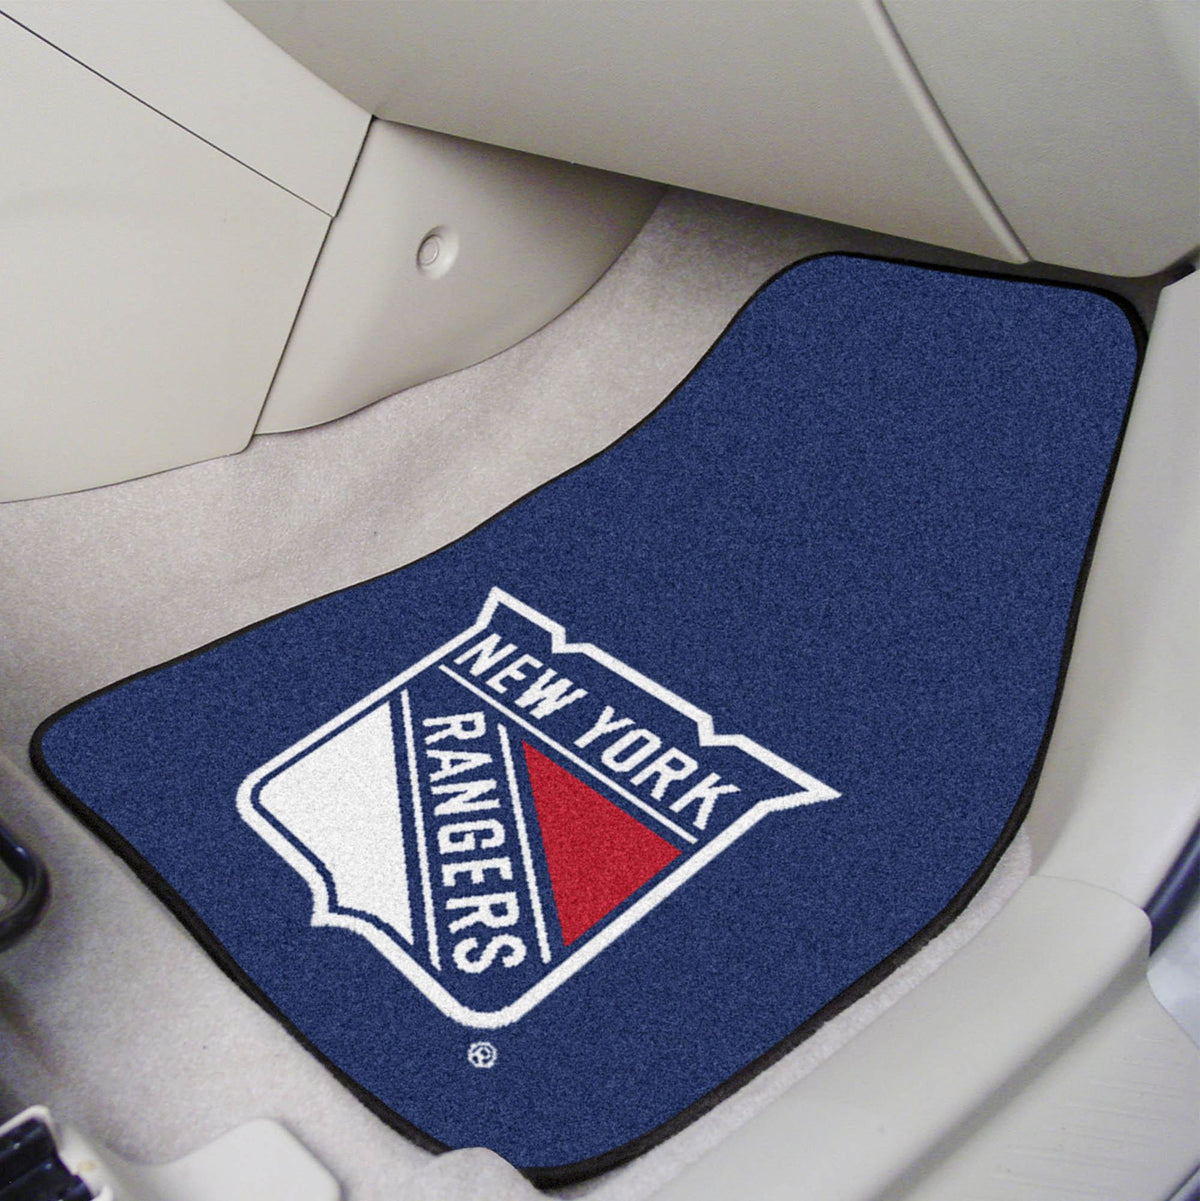 NHL - Carpet Car Mat, 2-Piece Set NHL Mats, Front Car Mats, 2-pc Carpet Car Mat Set, NHL, Auto Fan Mats New York Rangers